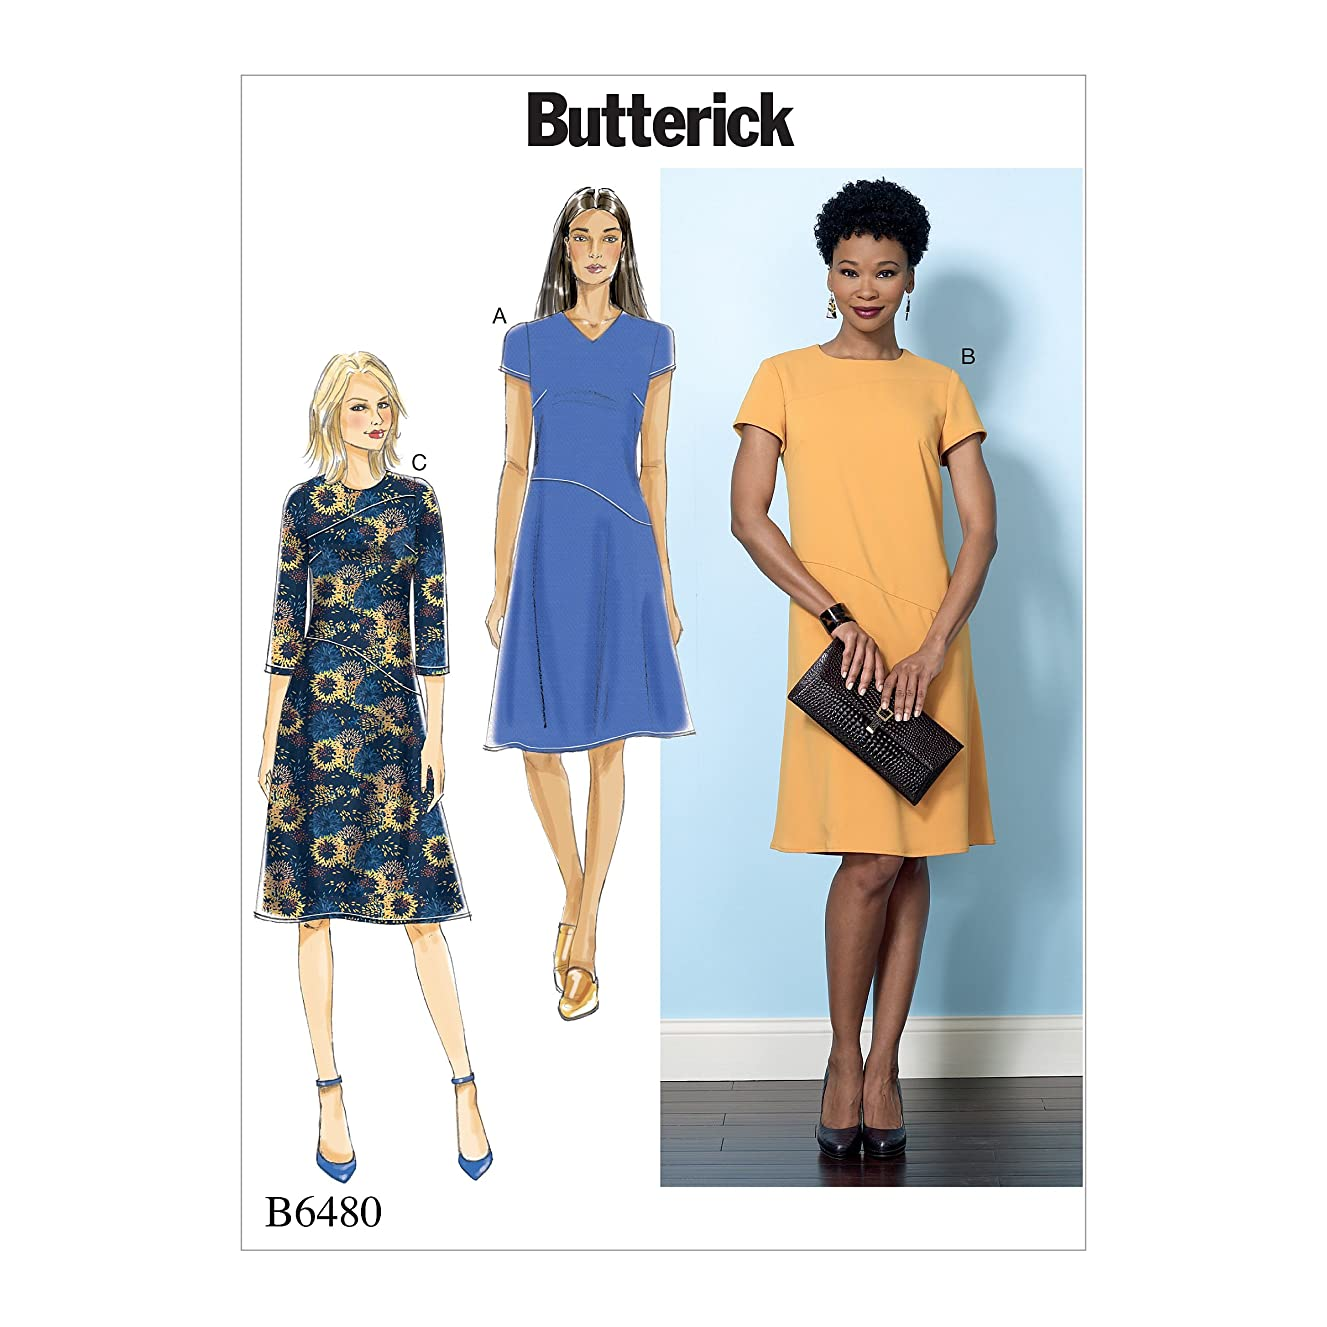 Butterick Patterns B6480E50 Misses' Fitted Dresses